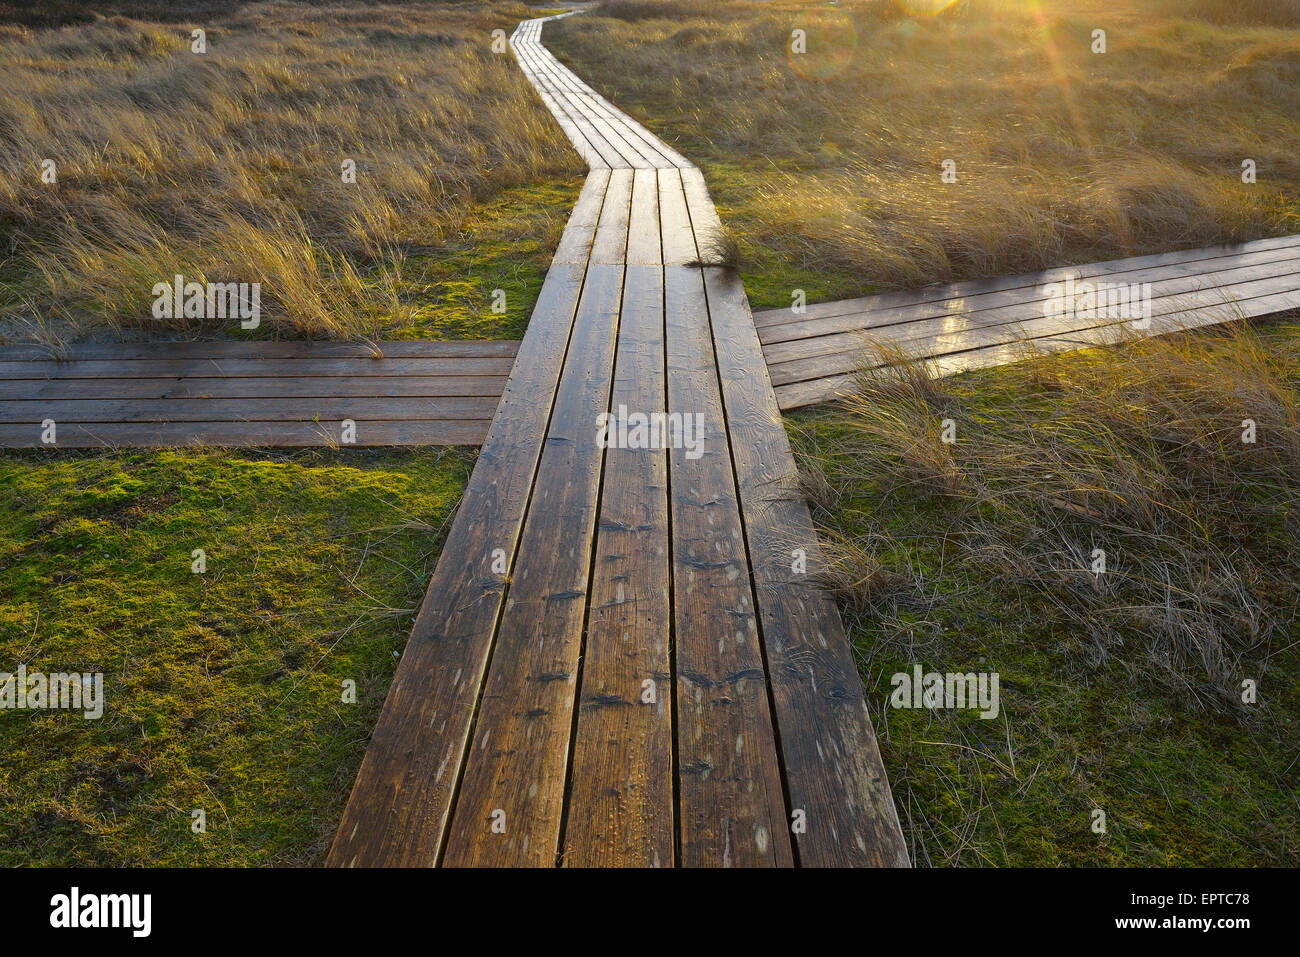 Crossing on Wooden Planks, Boardwalk Path between Dunes, Helgoland, Dune, North Sea, Island, Schleswig Holstein, Stock Photo